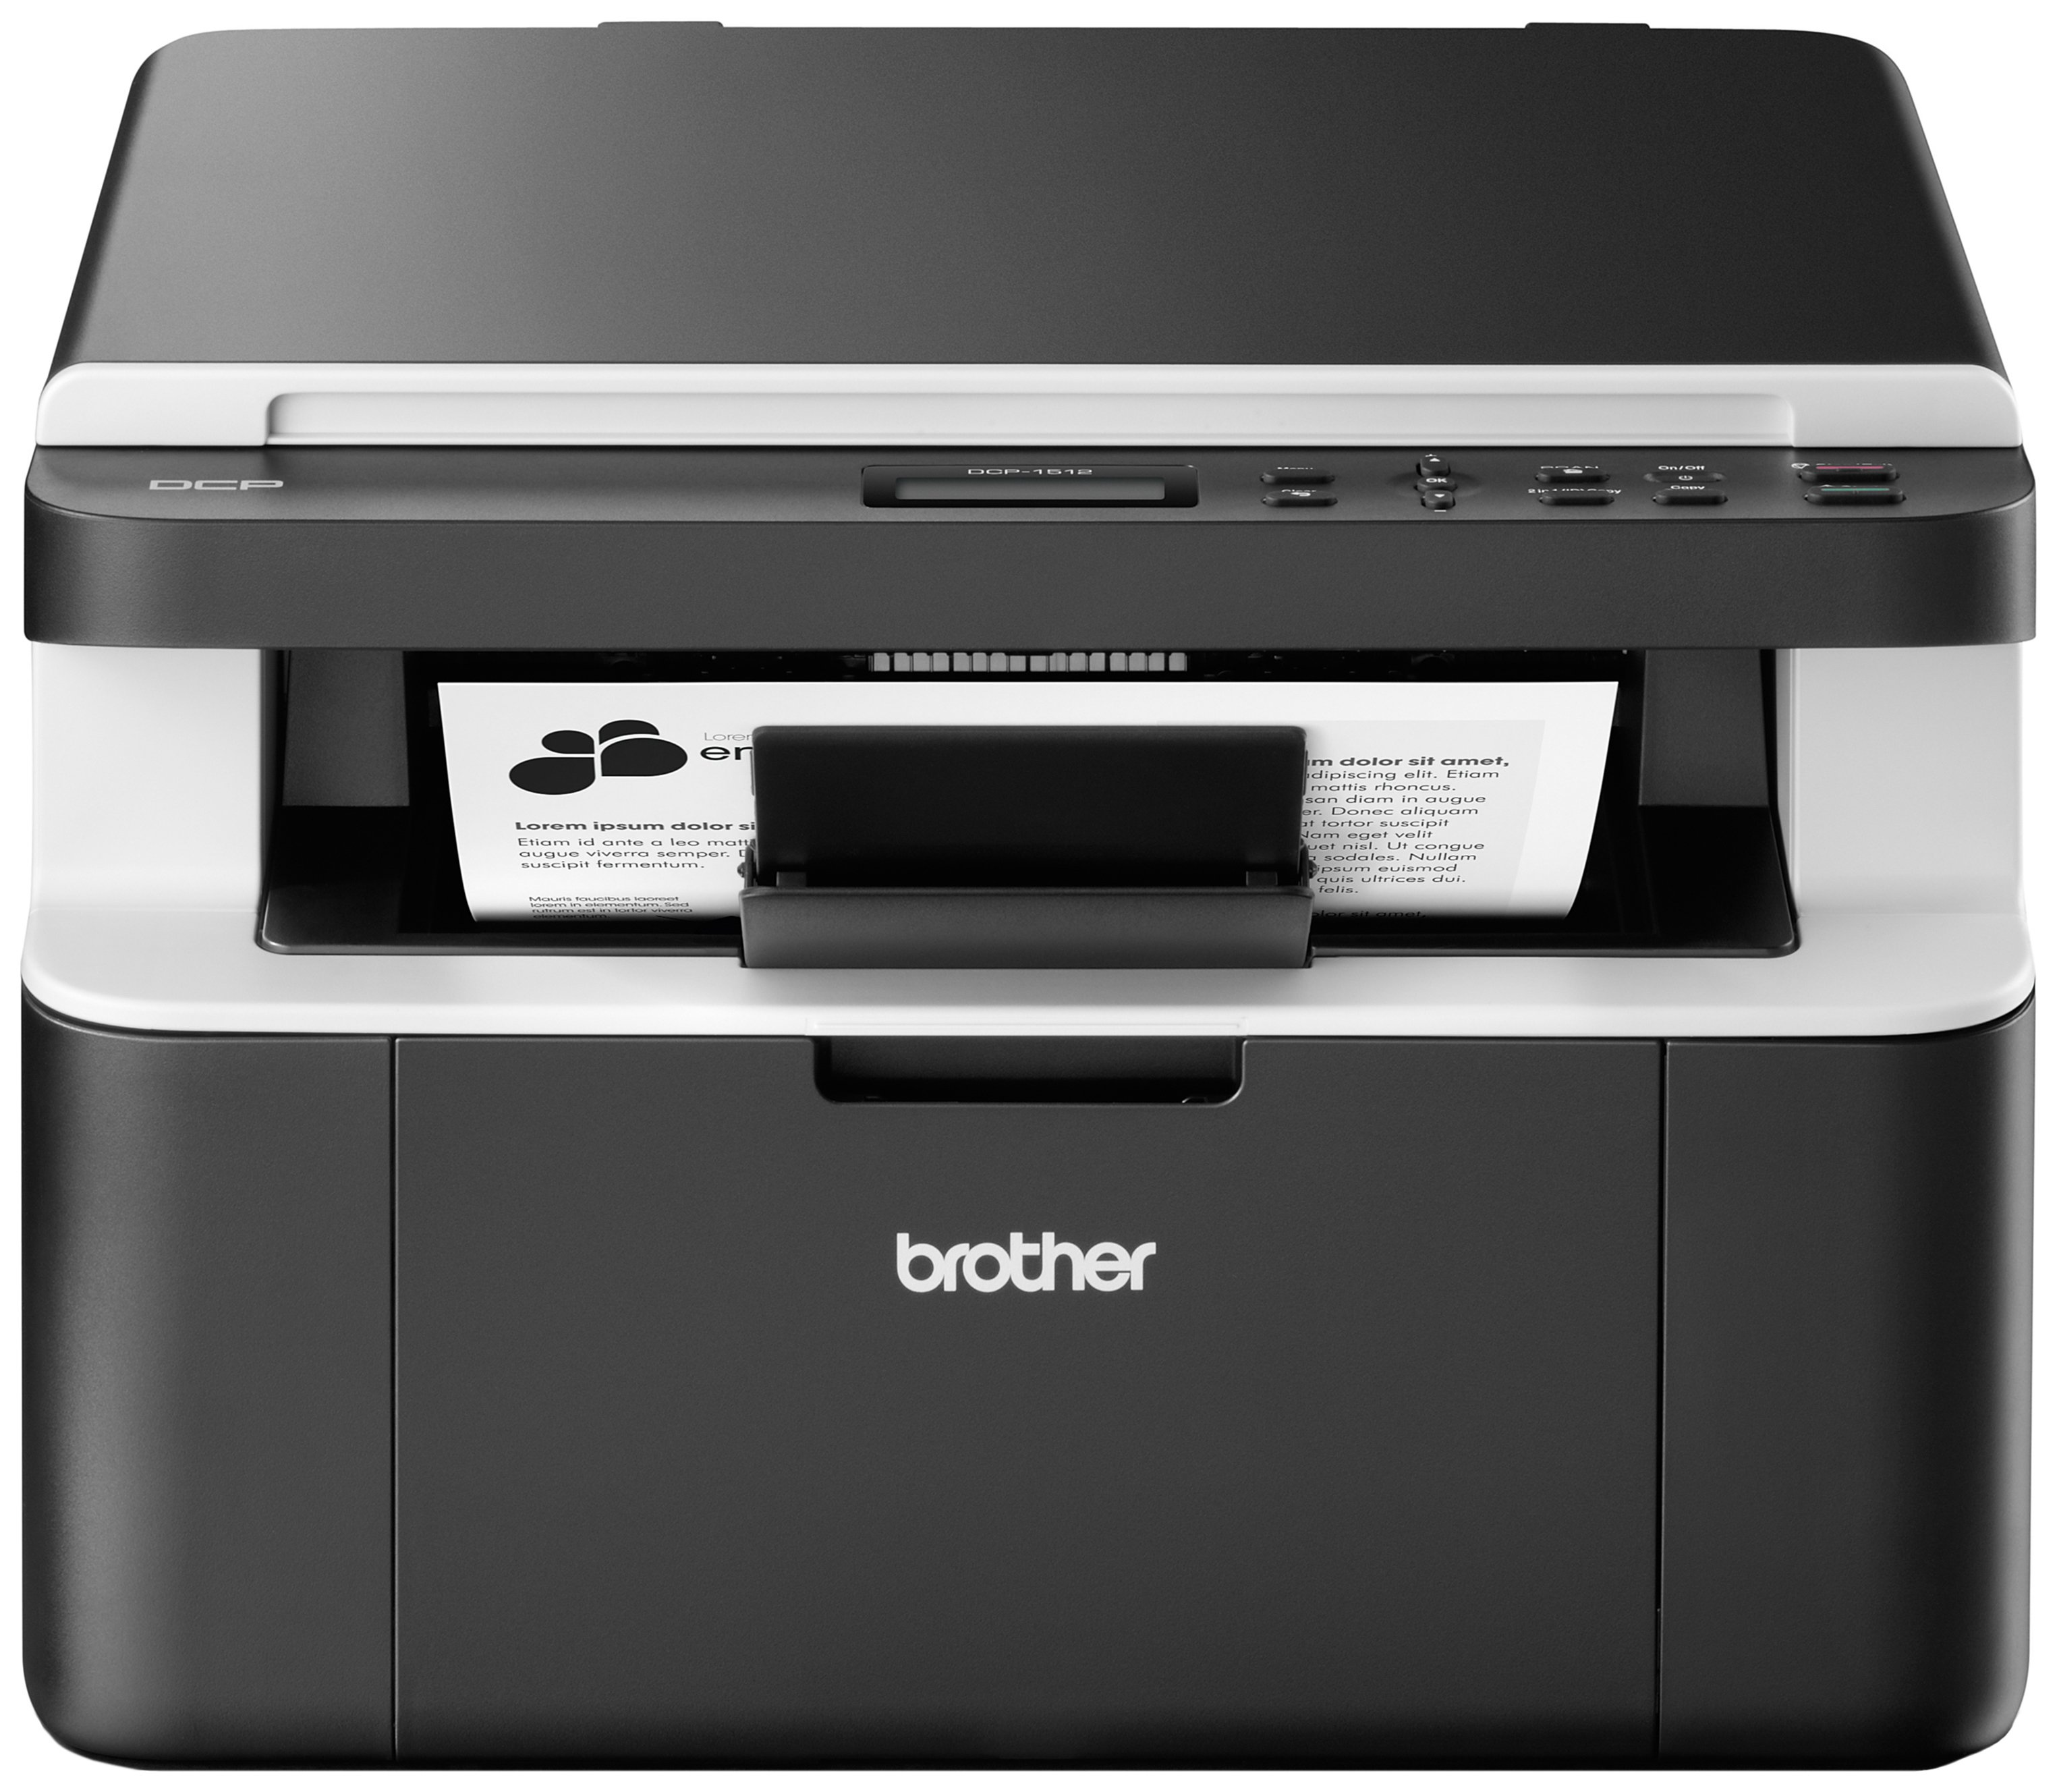 brother dcp 1612w wi fi all in one mono laser printer. Black Bedroom Furniture Sets. Home Design Ideas